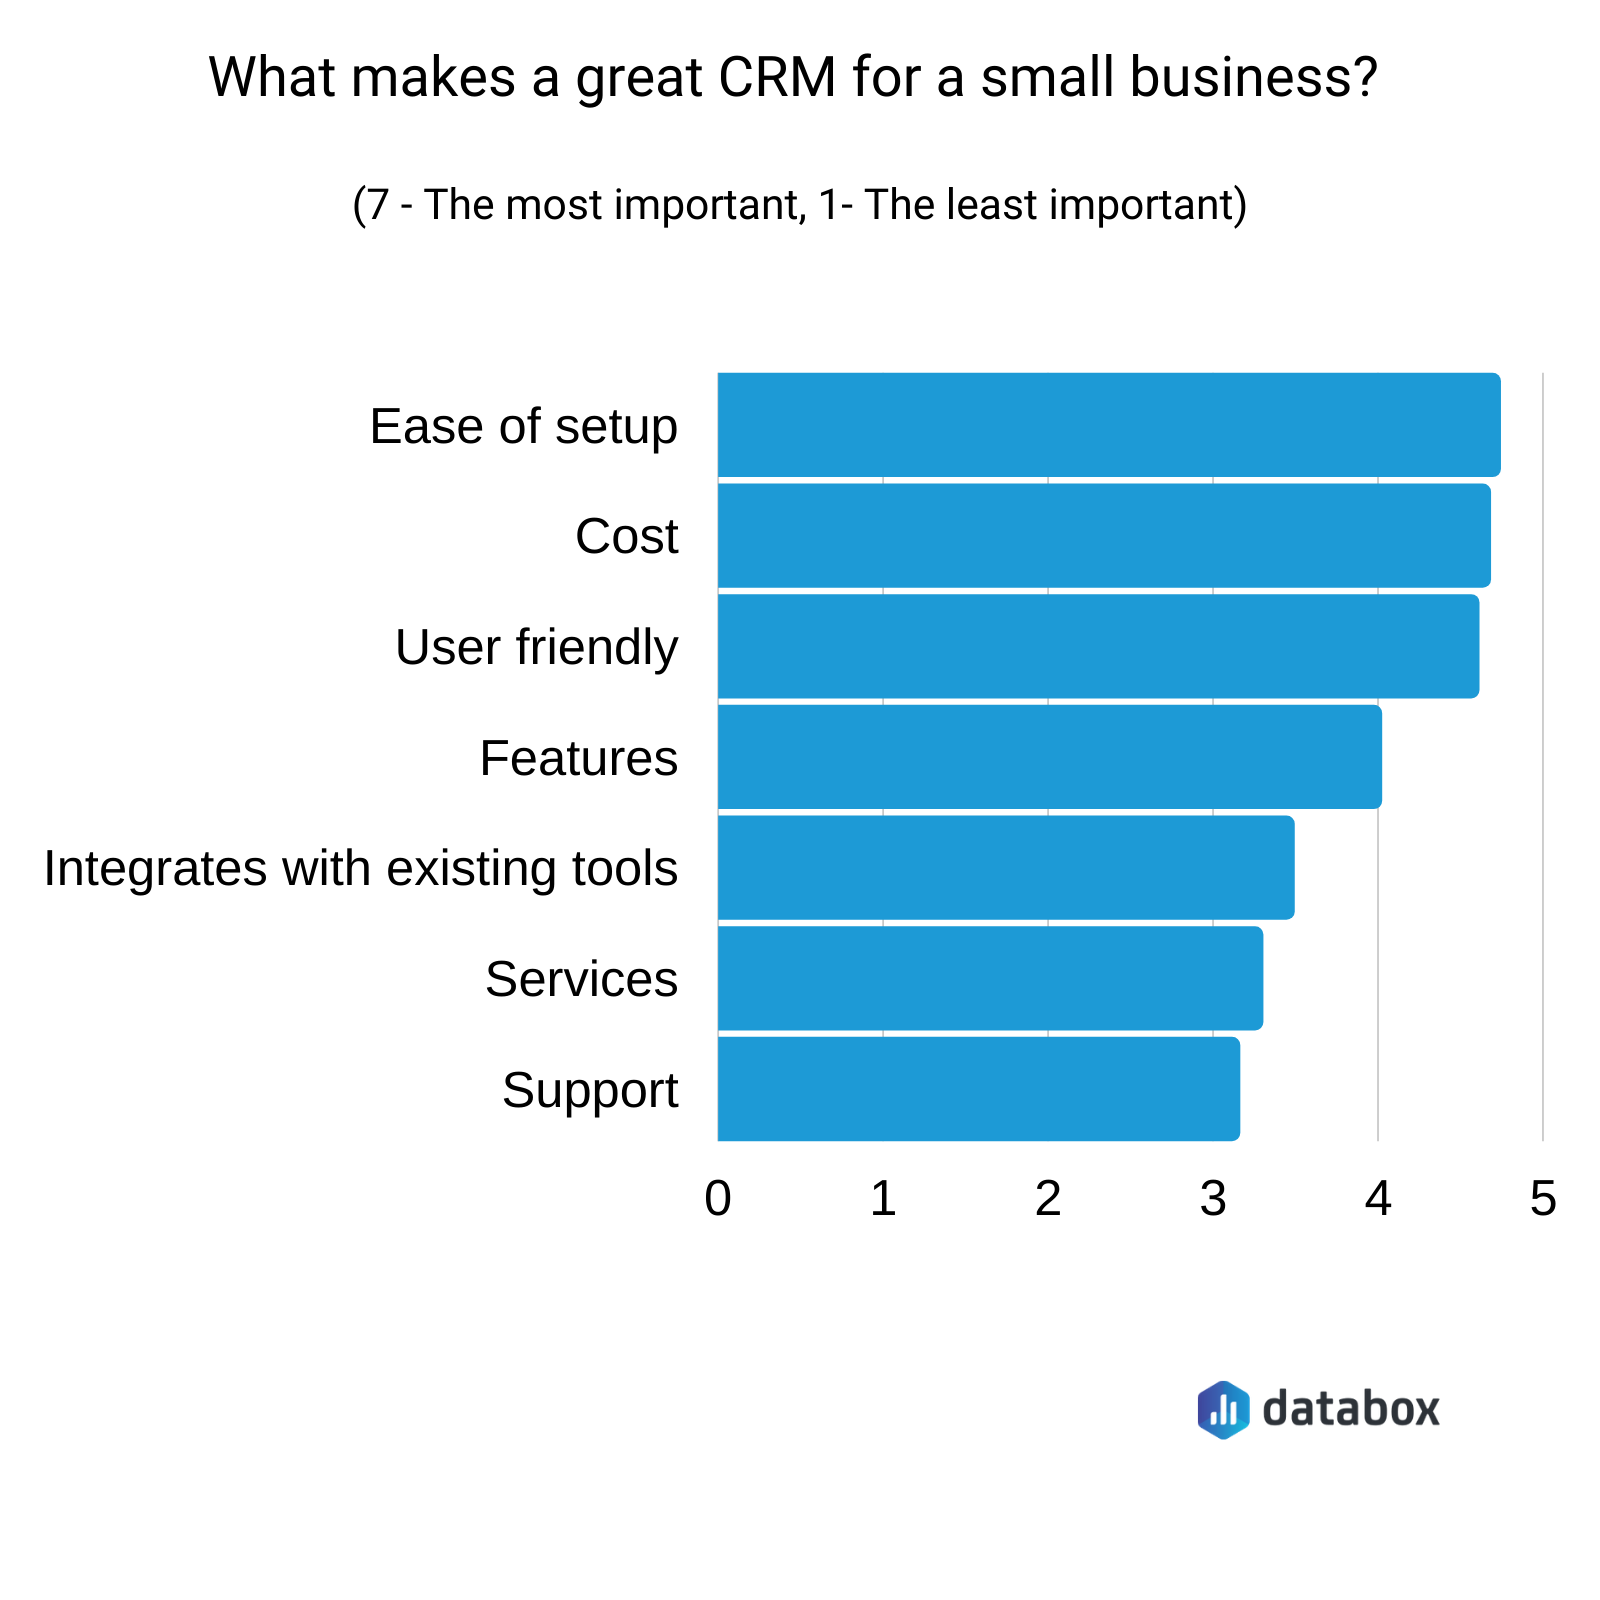 what makes a great CRM for small business